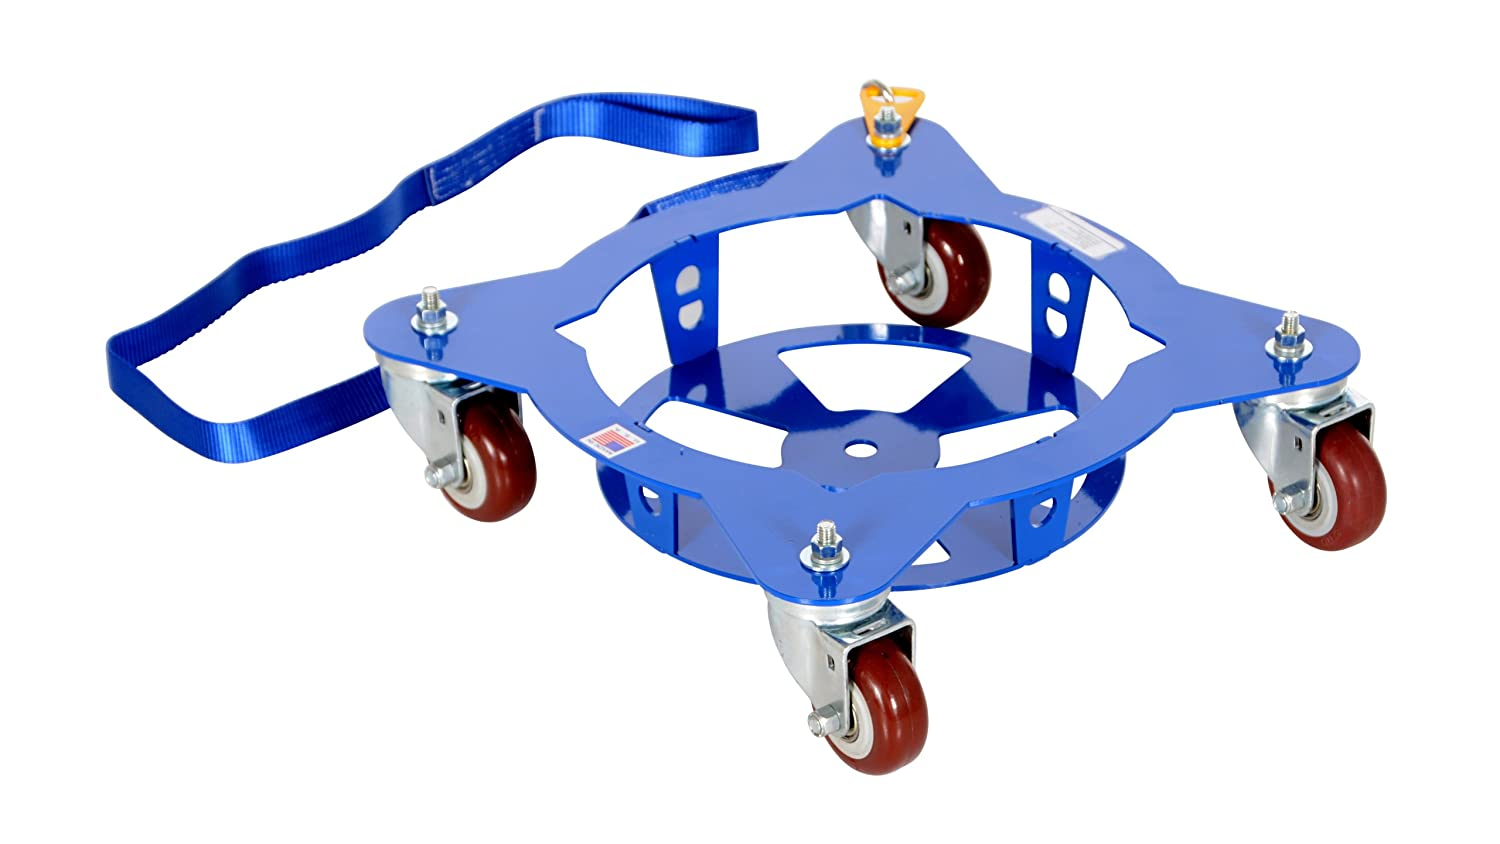 19-7//16 Width x 5 Height Vestil MPD-5 Multi Pail Dolly with 4 Pull Strap 150 lbs Capacity